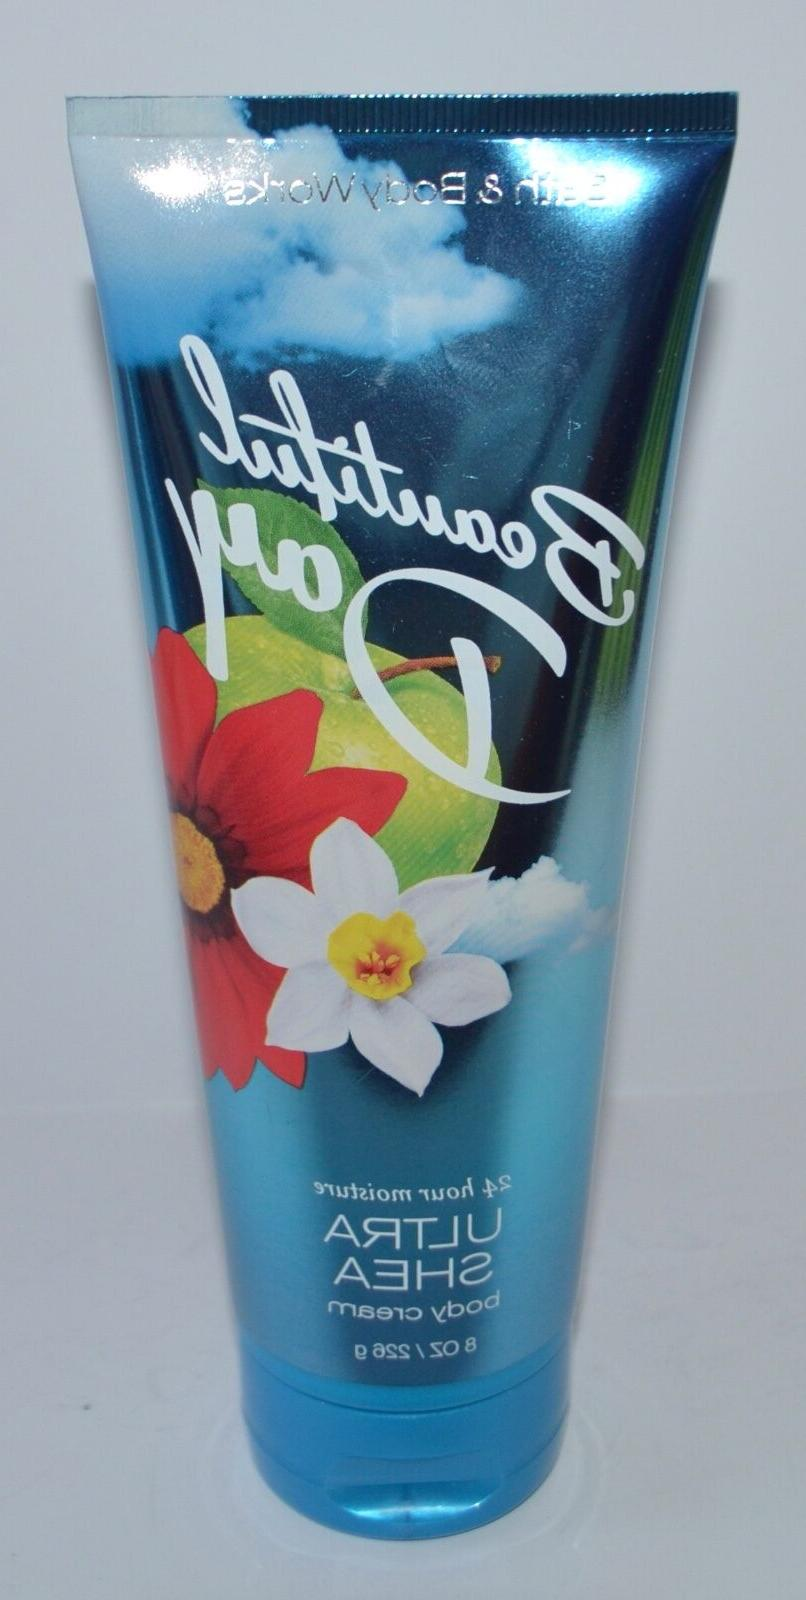 3 BATH & BODY WORKS BEAUTIFUL DAY ULTRA SHEA BODY CREAM LOTI